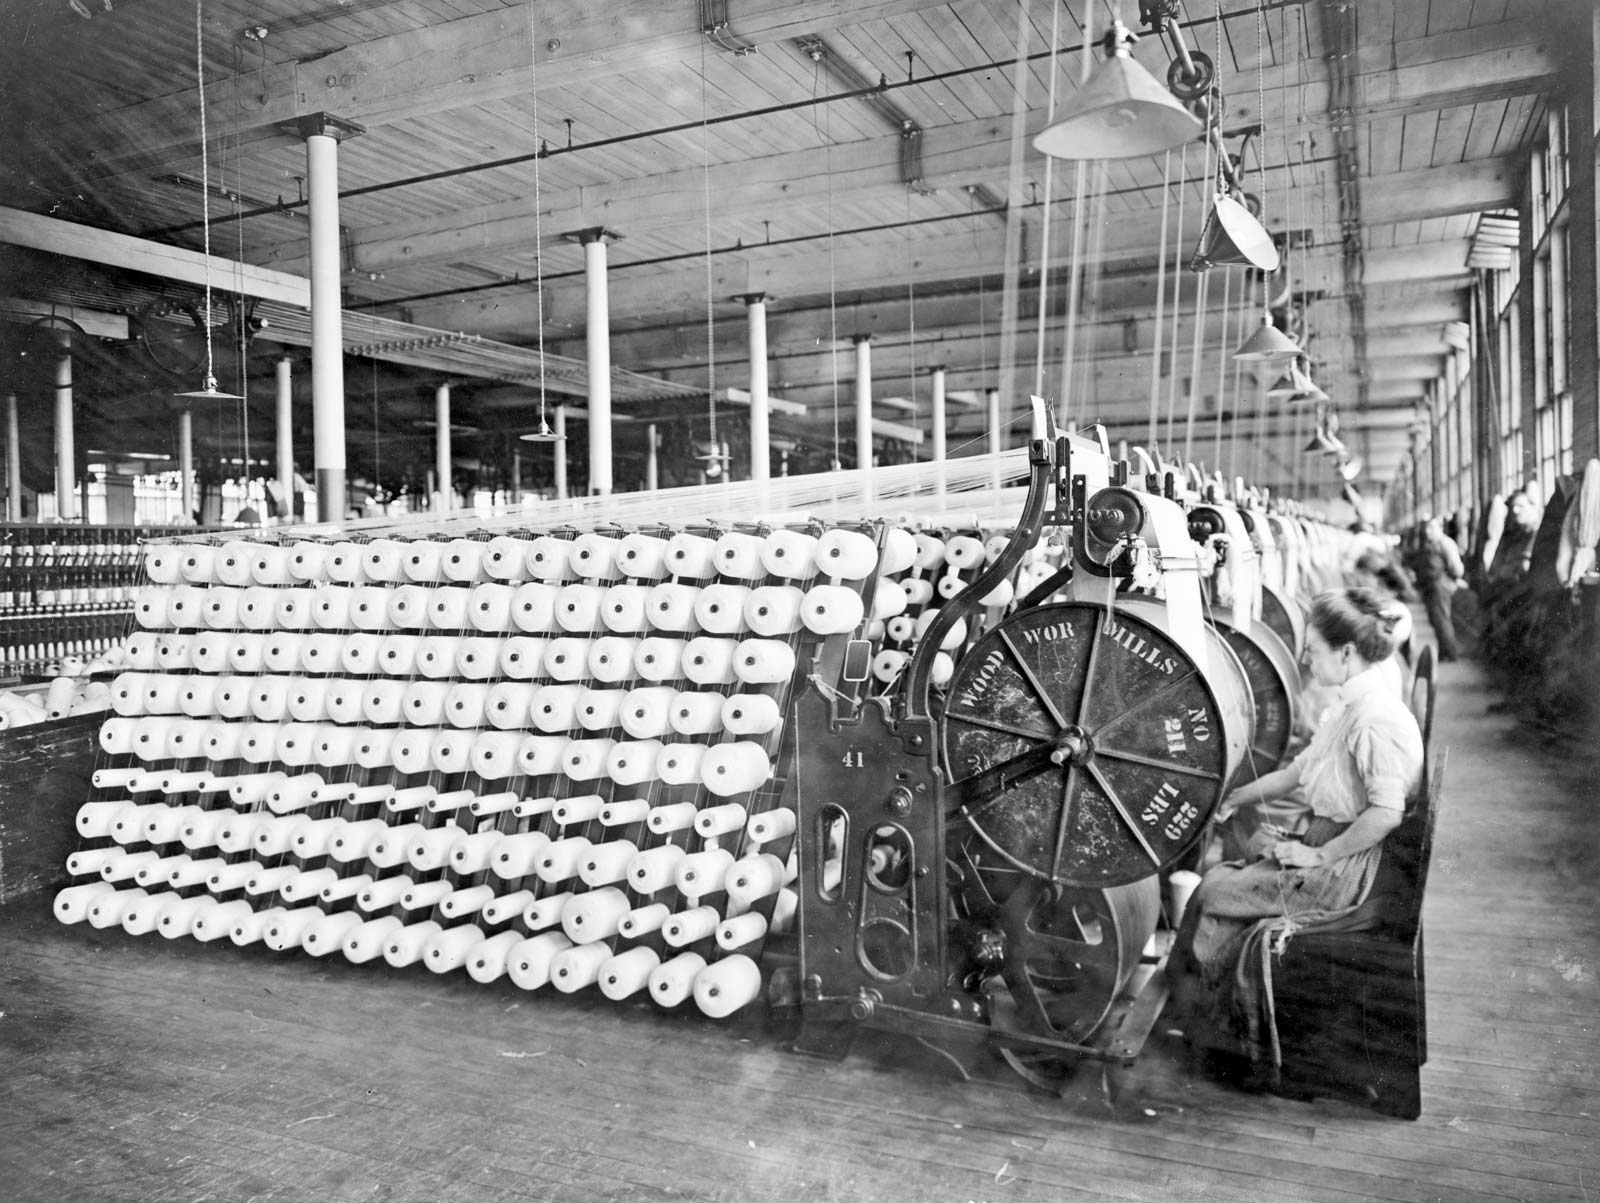 24 Steely Facts About The Industrial Revolution